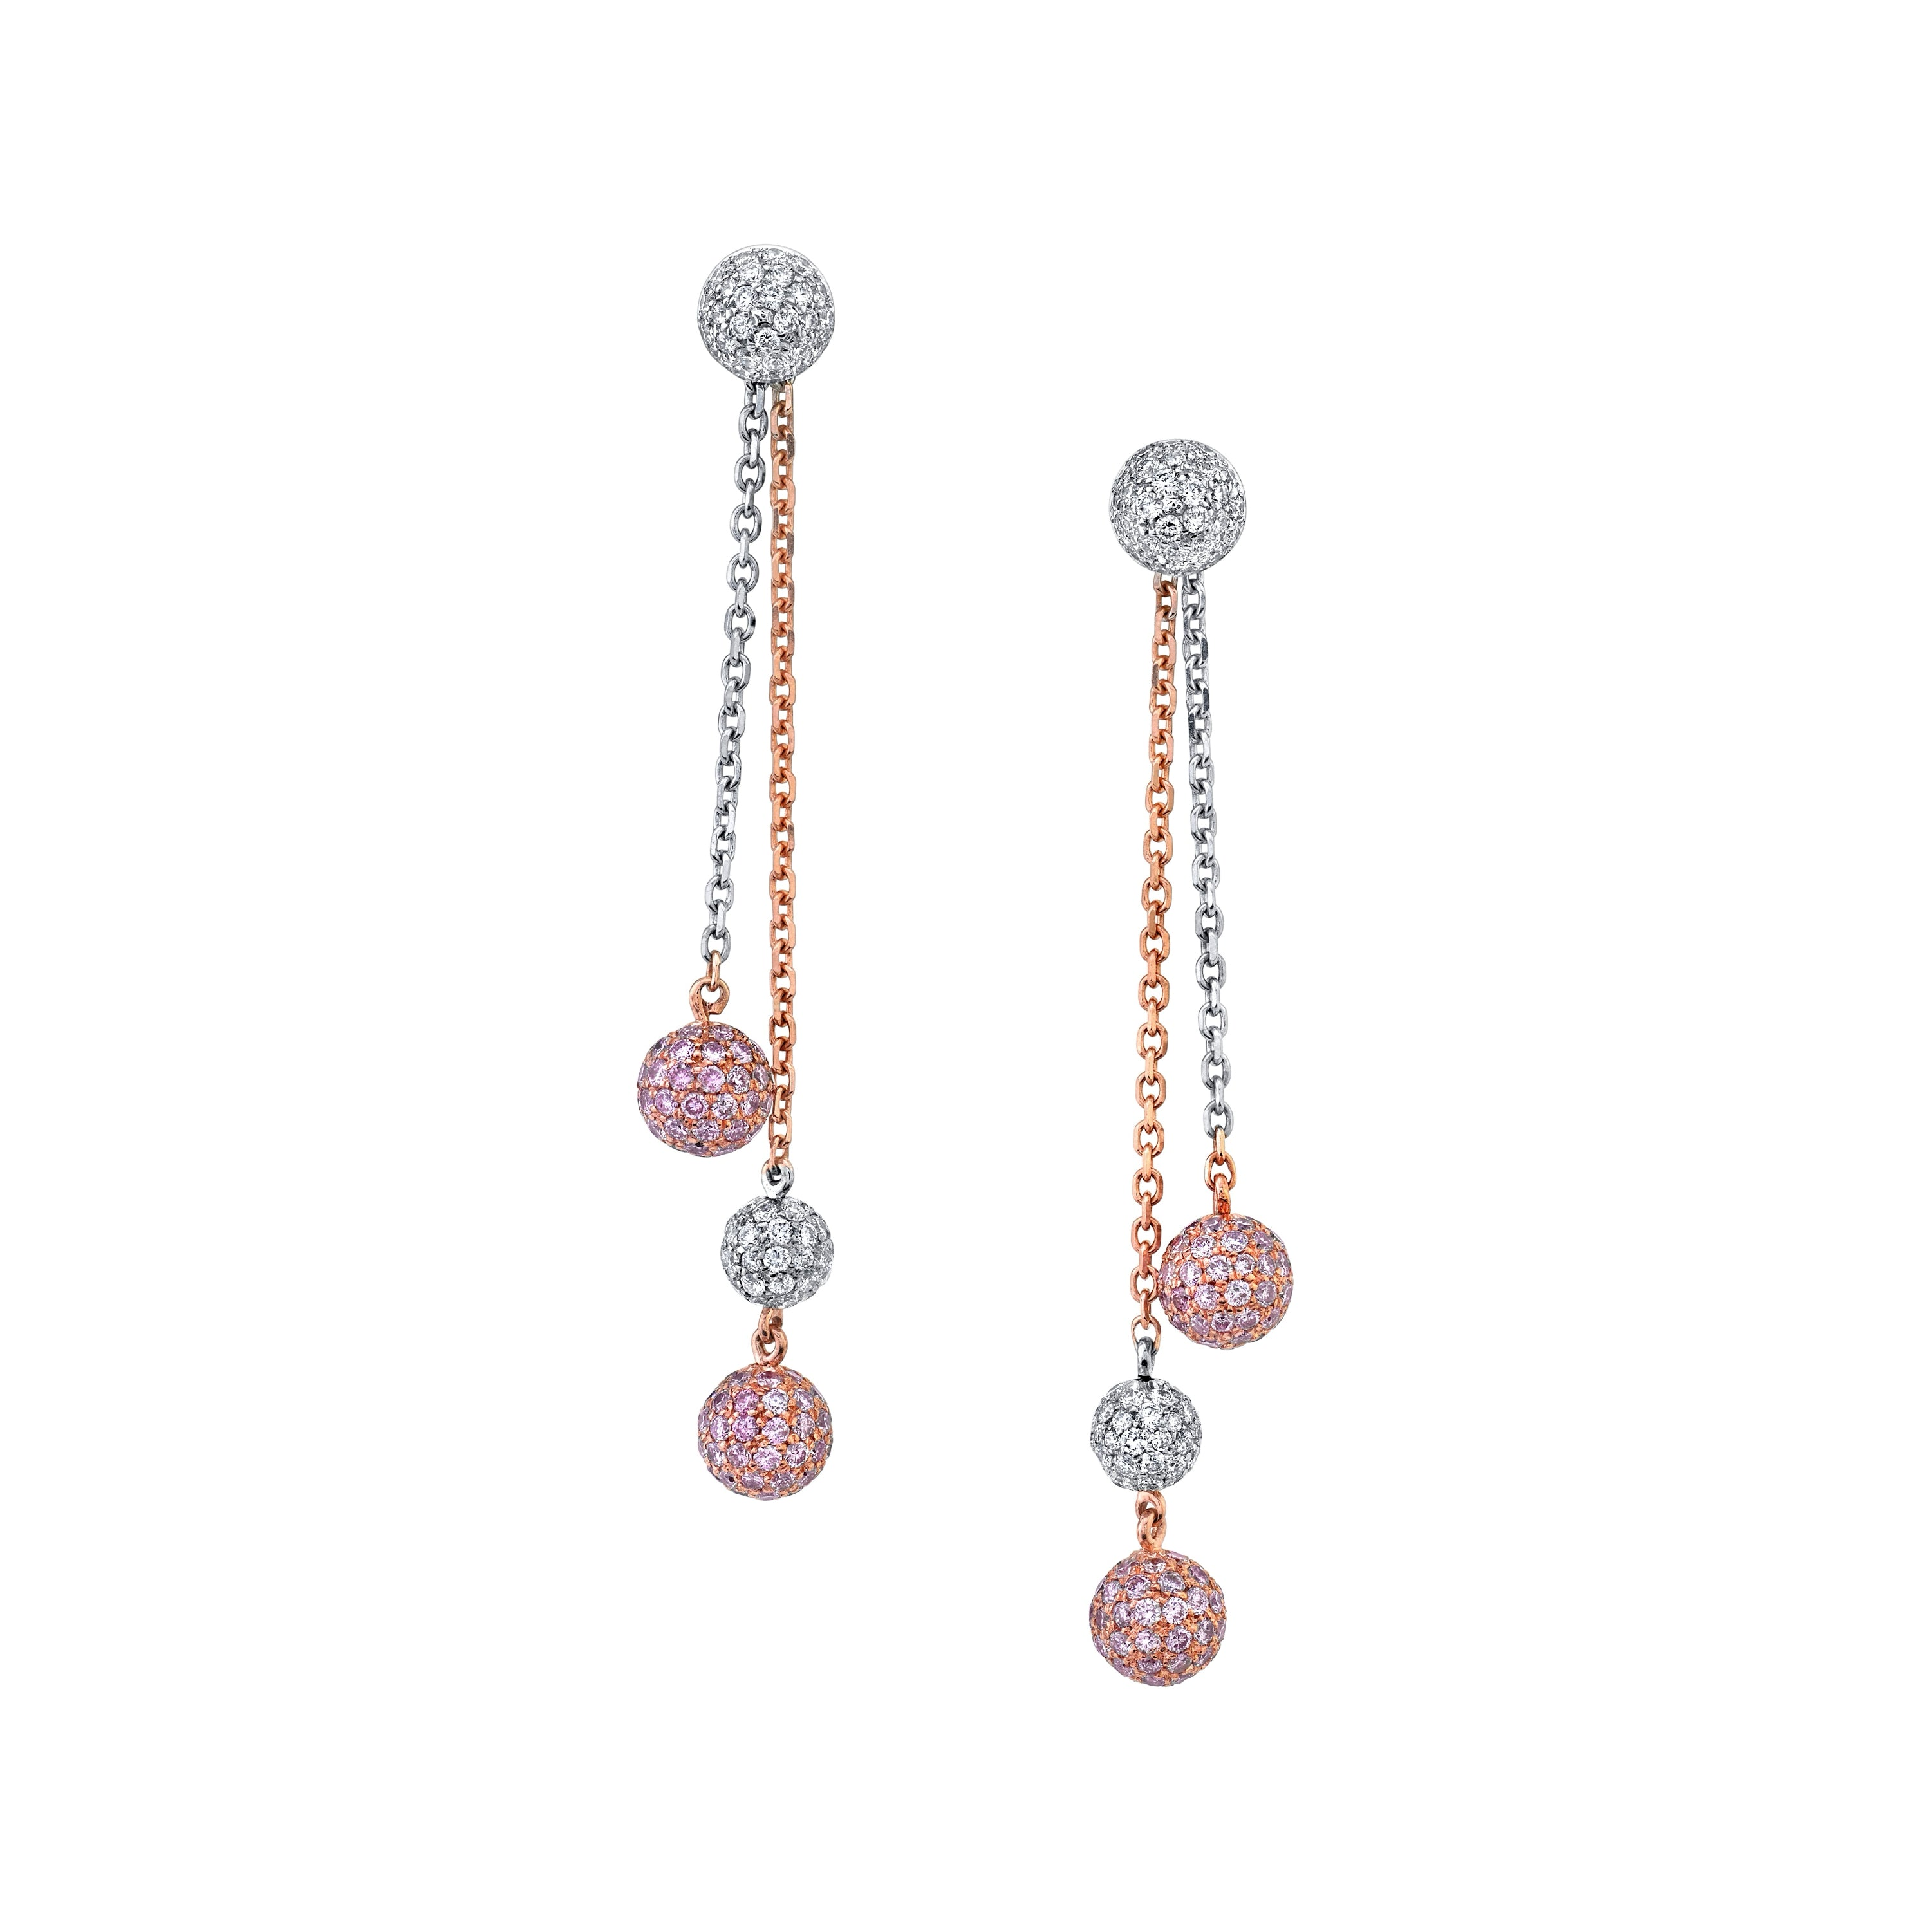 PINK DIAMOND DROP EARRINGS